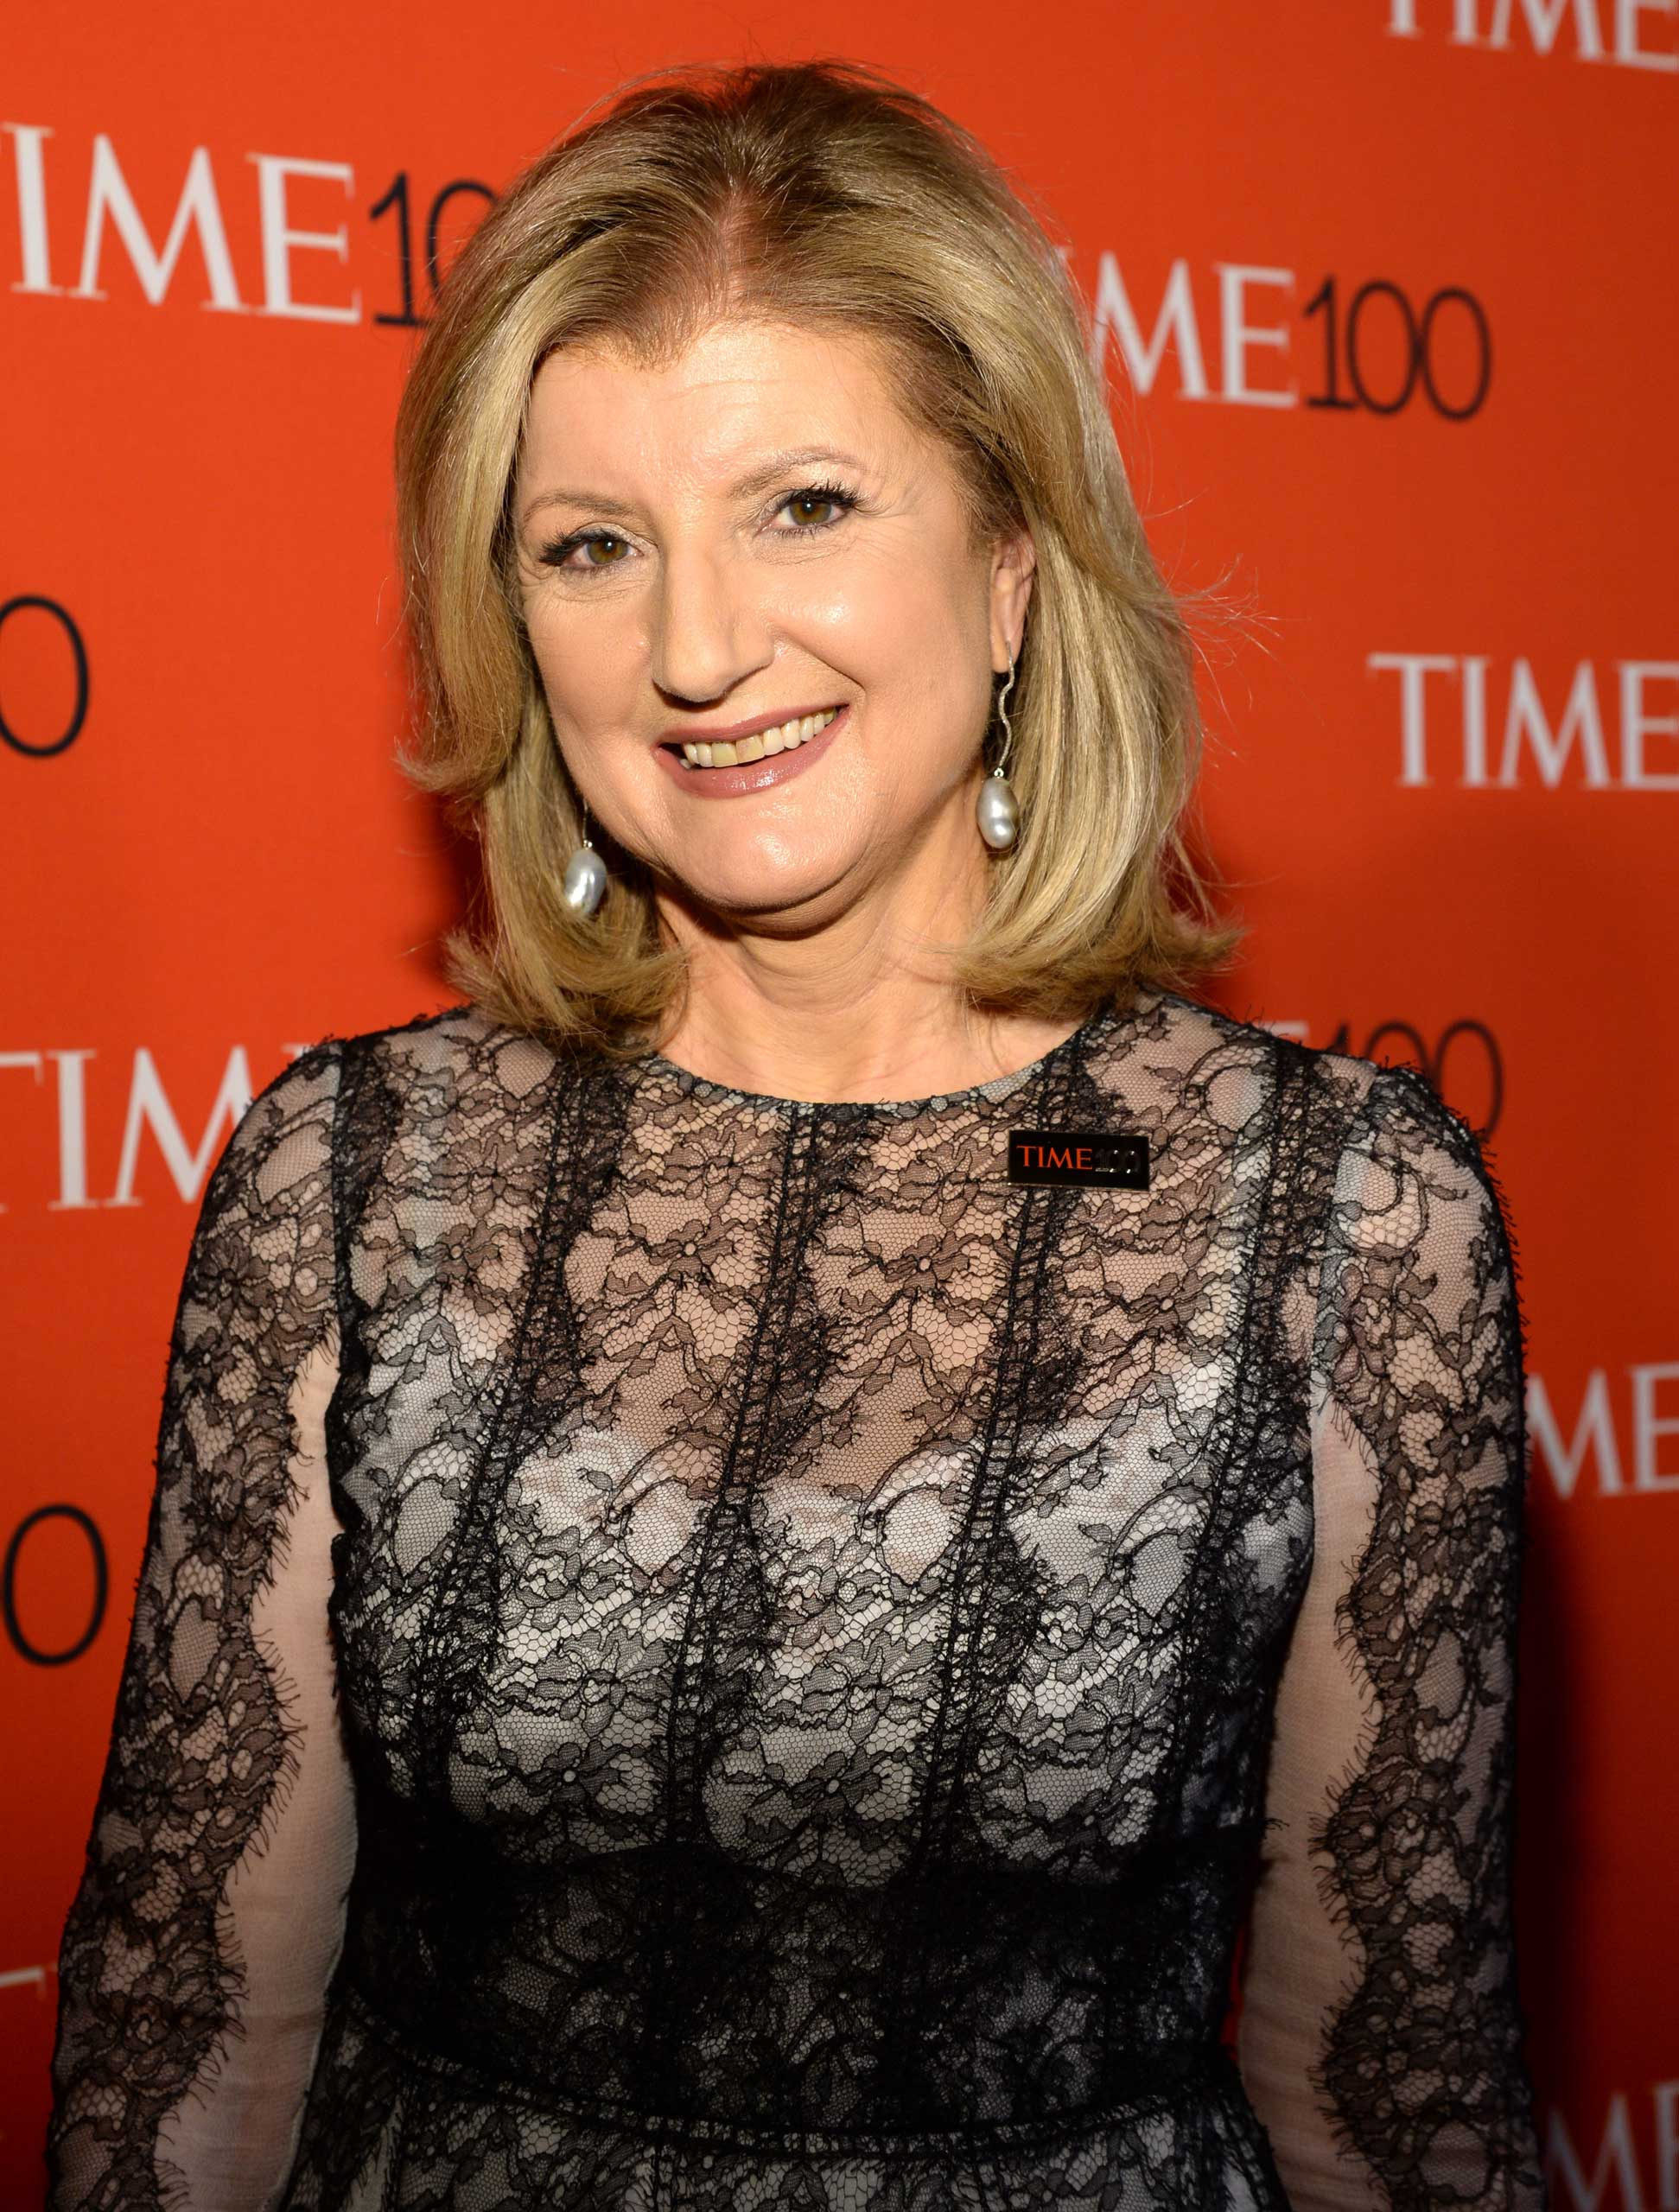 Arianna Huffington attends the TIME 100 Gala at Jazz at Lincoln Center in New York City on Apr. 21, 2015.